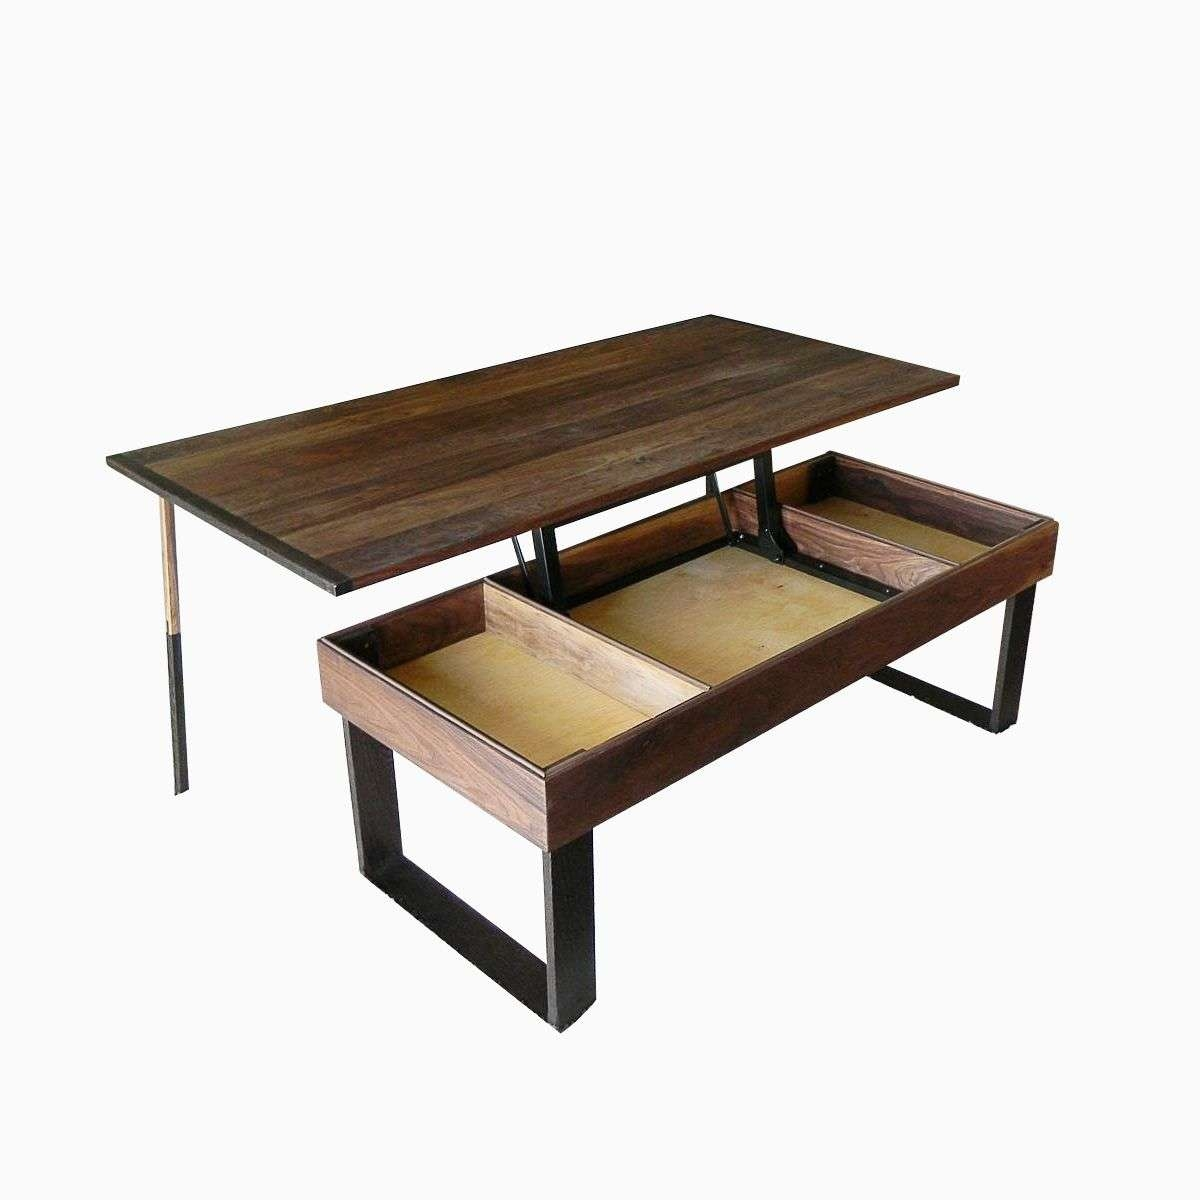 Coffee Tables : Black Lift Top Coffee Table Unique With Tables Within Fashionable Coffee Tables With Raisable Top (View 15 of 20)